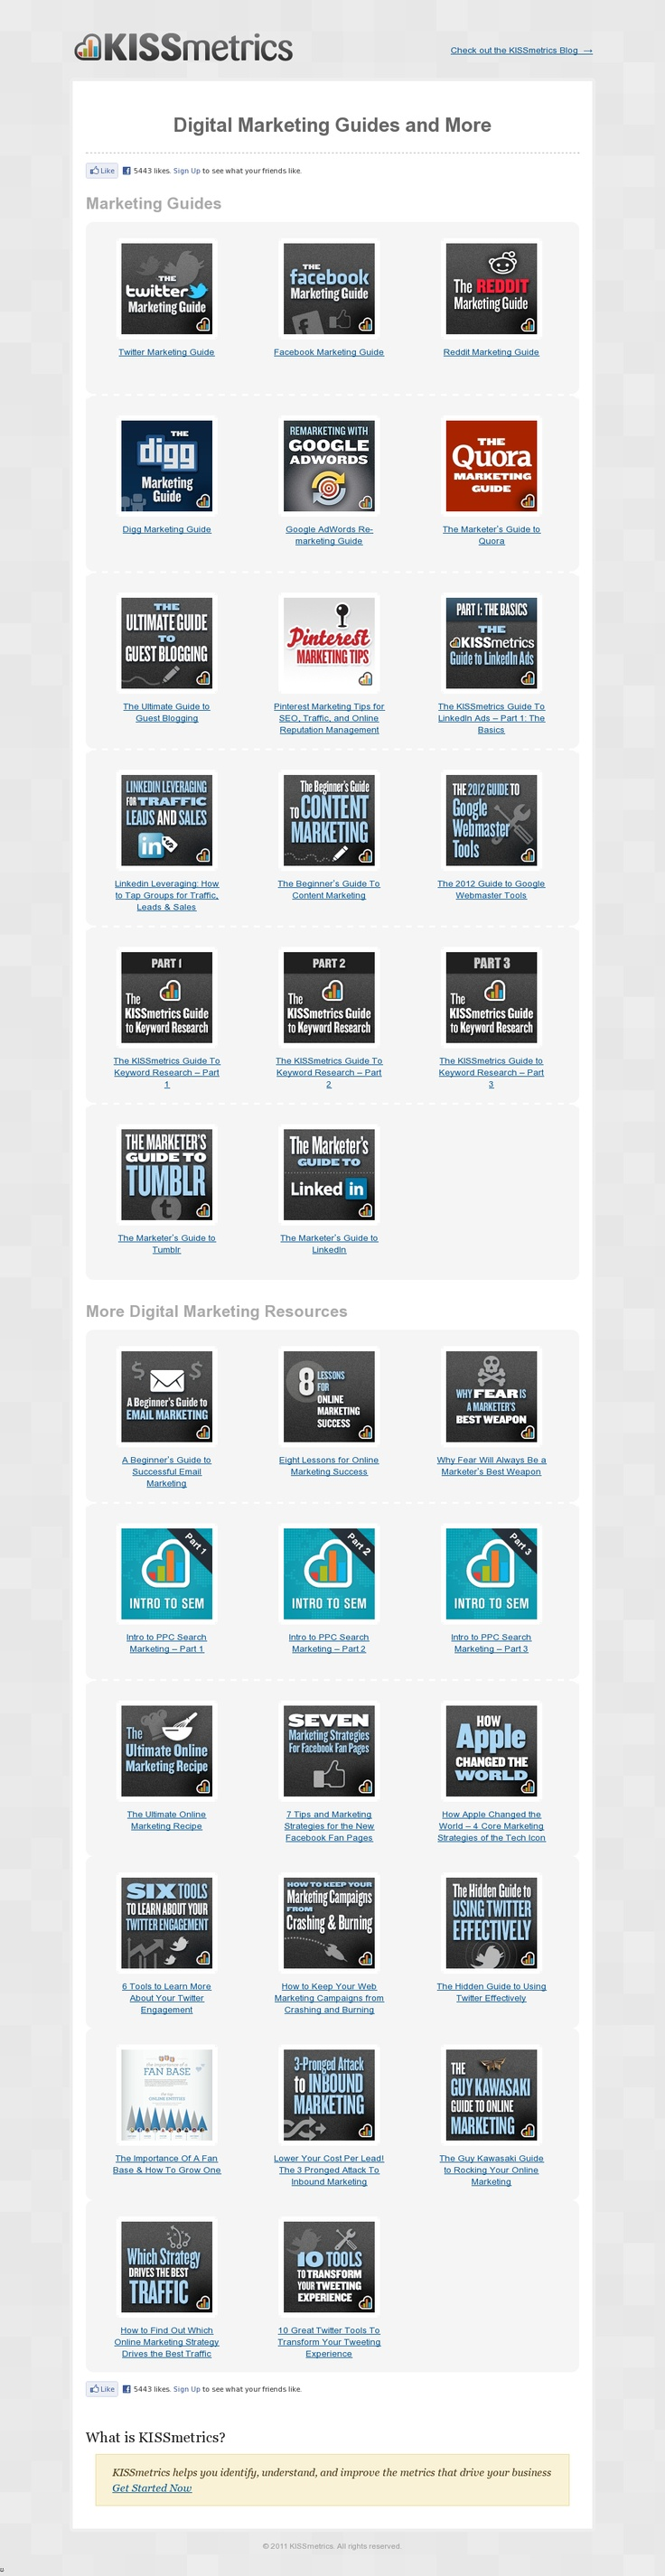 Digital Marketing Guides and More - 'http://blog.kissmetrics.com/marketing-guides/' #digitalmarketing #resources